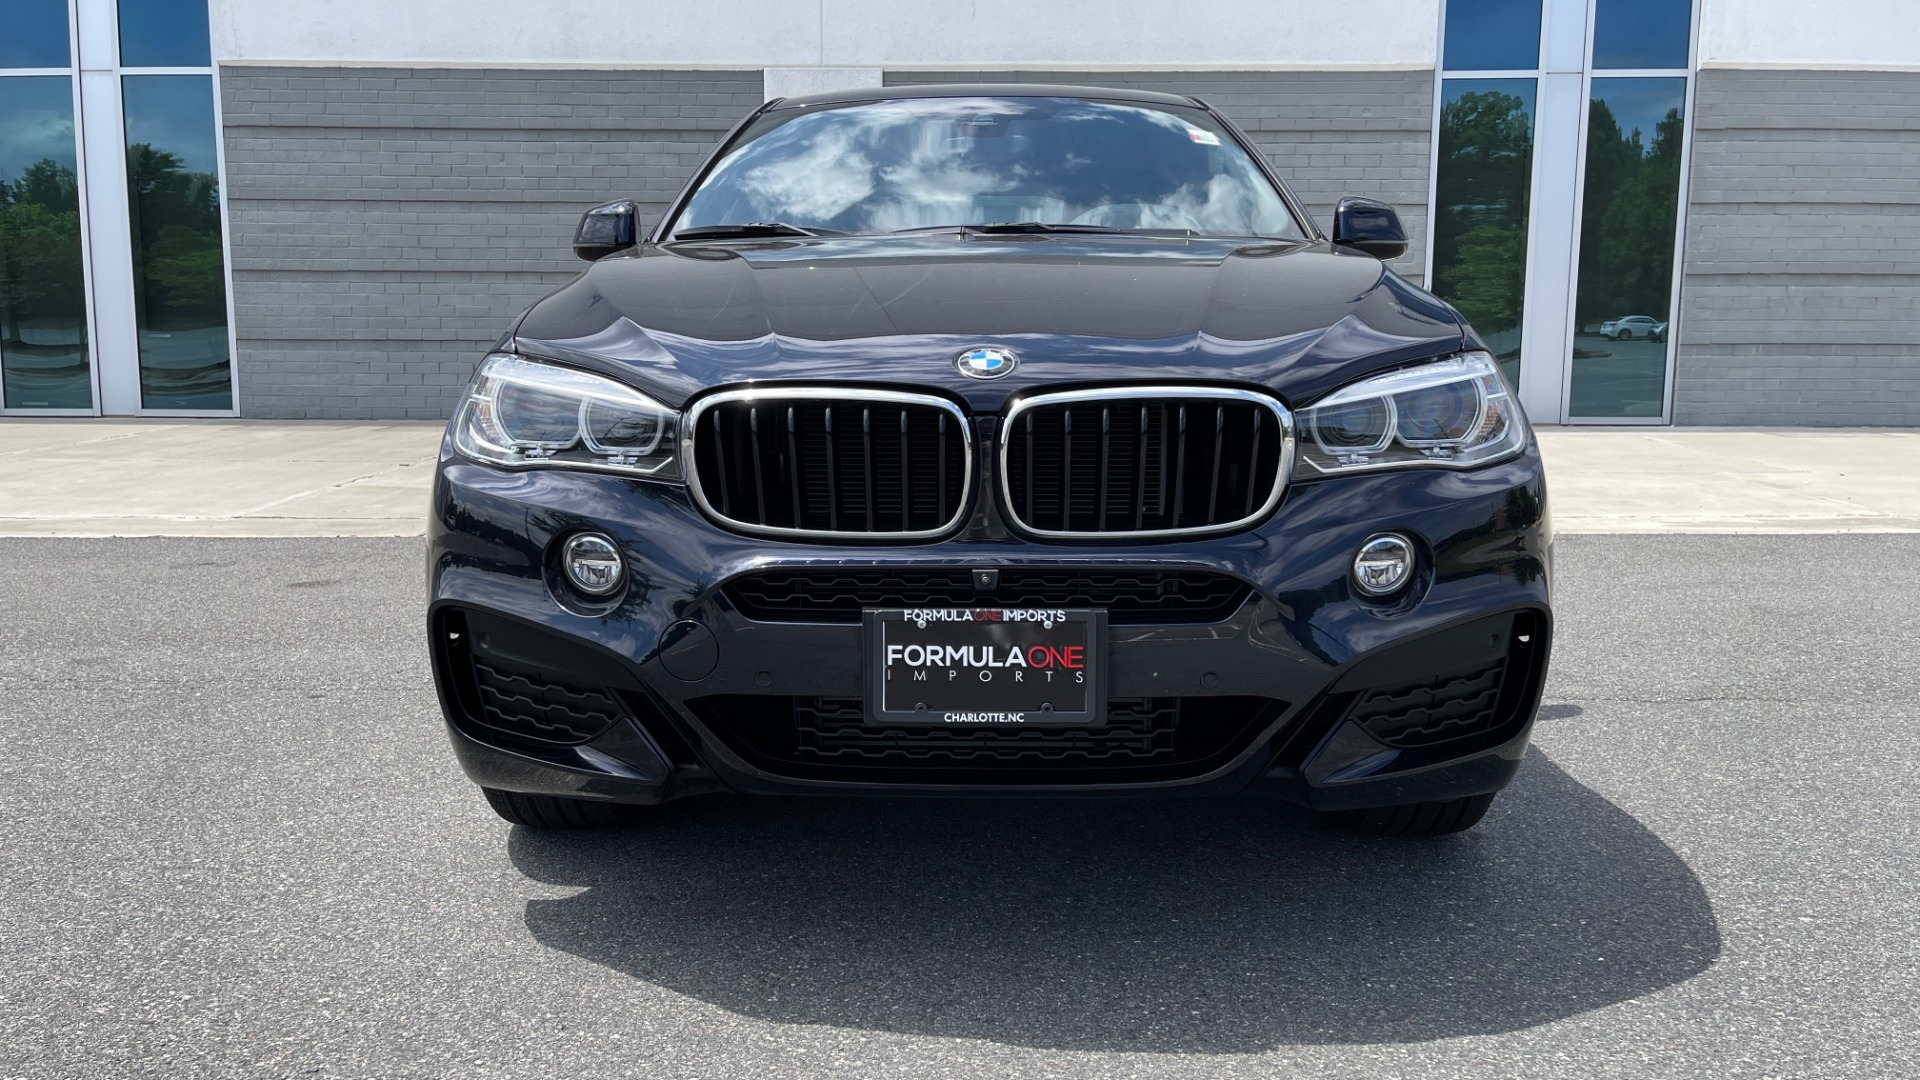 Used 2018 BMW X6 XDRIVE35I M-SPORT / DRVR ASST / PRK ASST / H/K SND / APPLE / WIRELESS CHARG for sale $51,995 at Formula Imports in Charlotte NC 28227 12